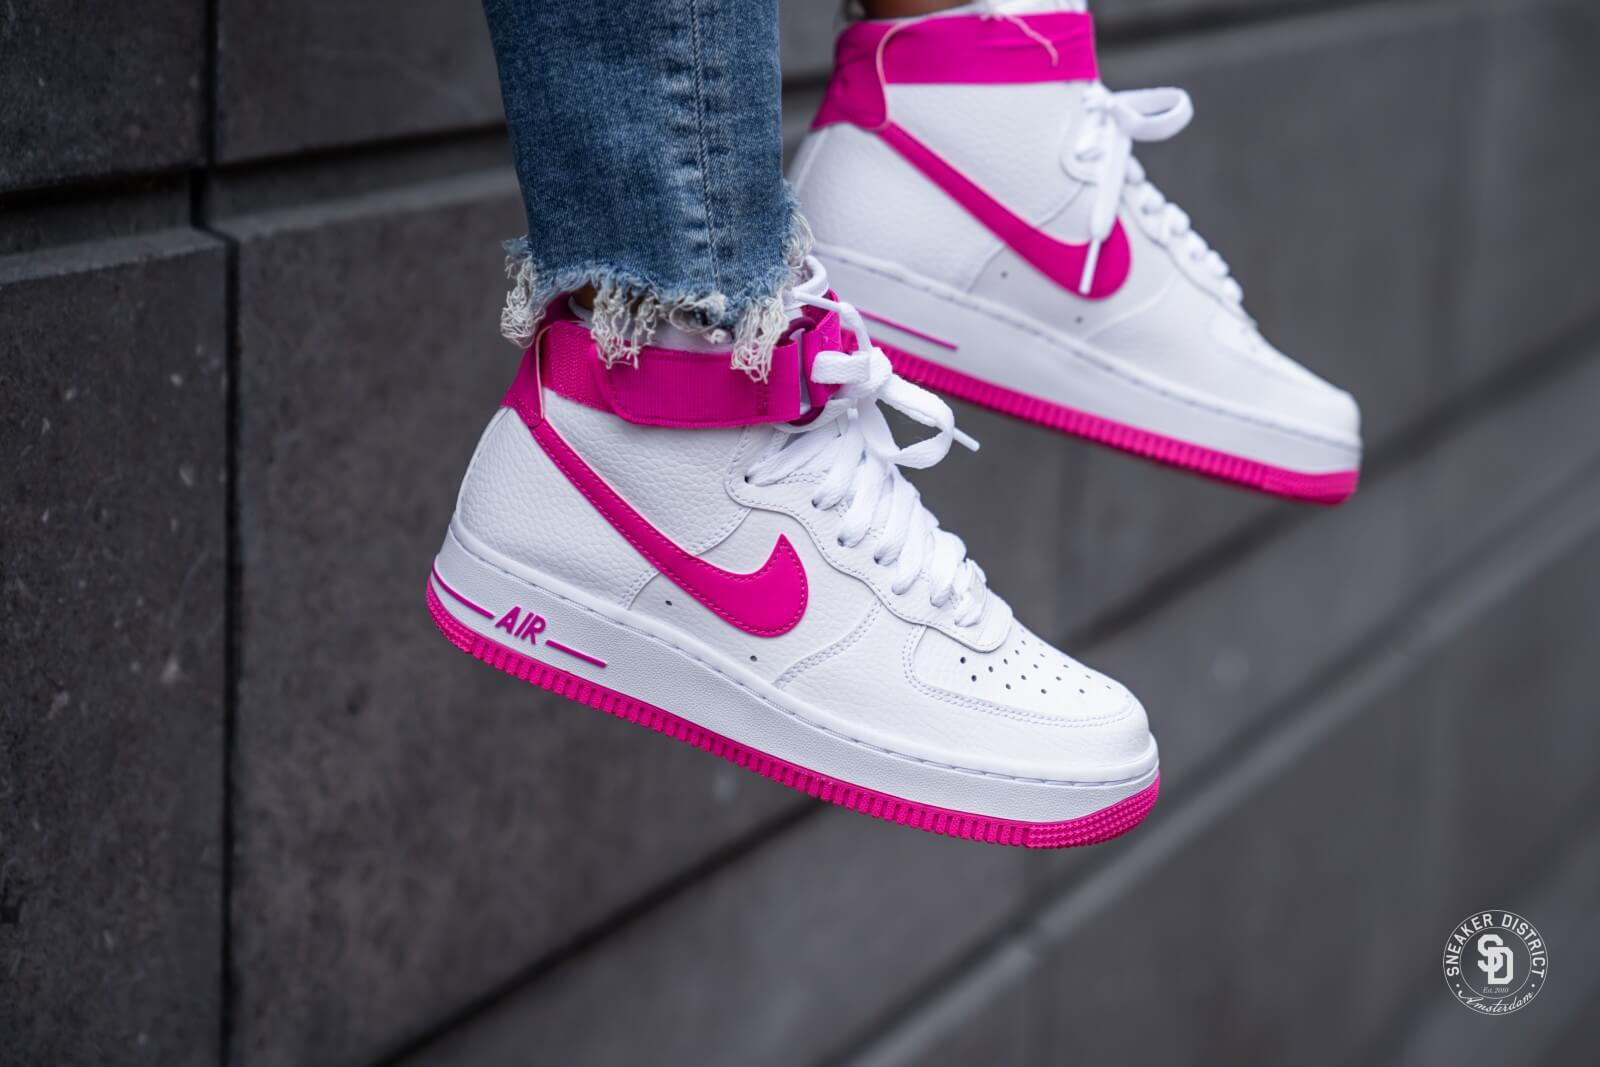 Nike Wmns Air Force 1 High LX   White   Sneakers   AO5138